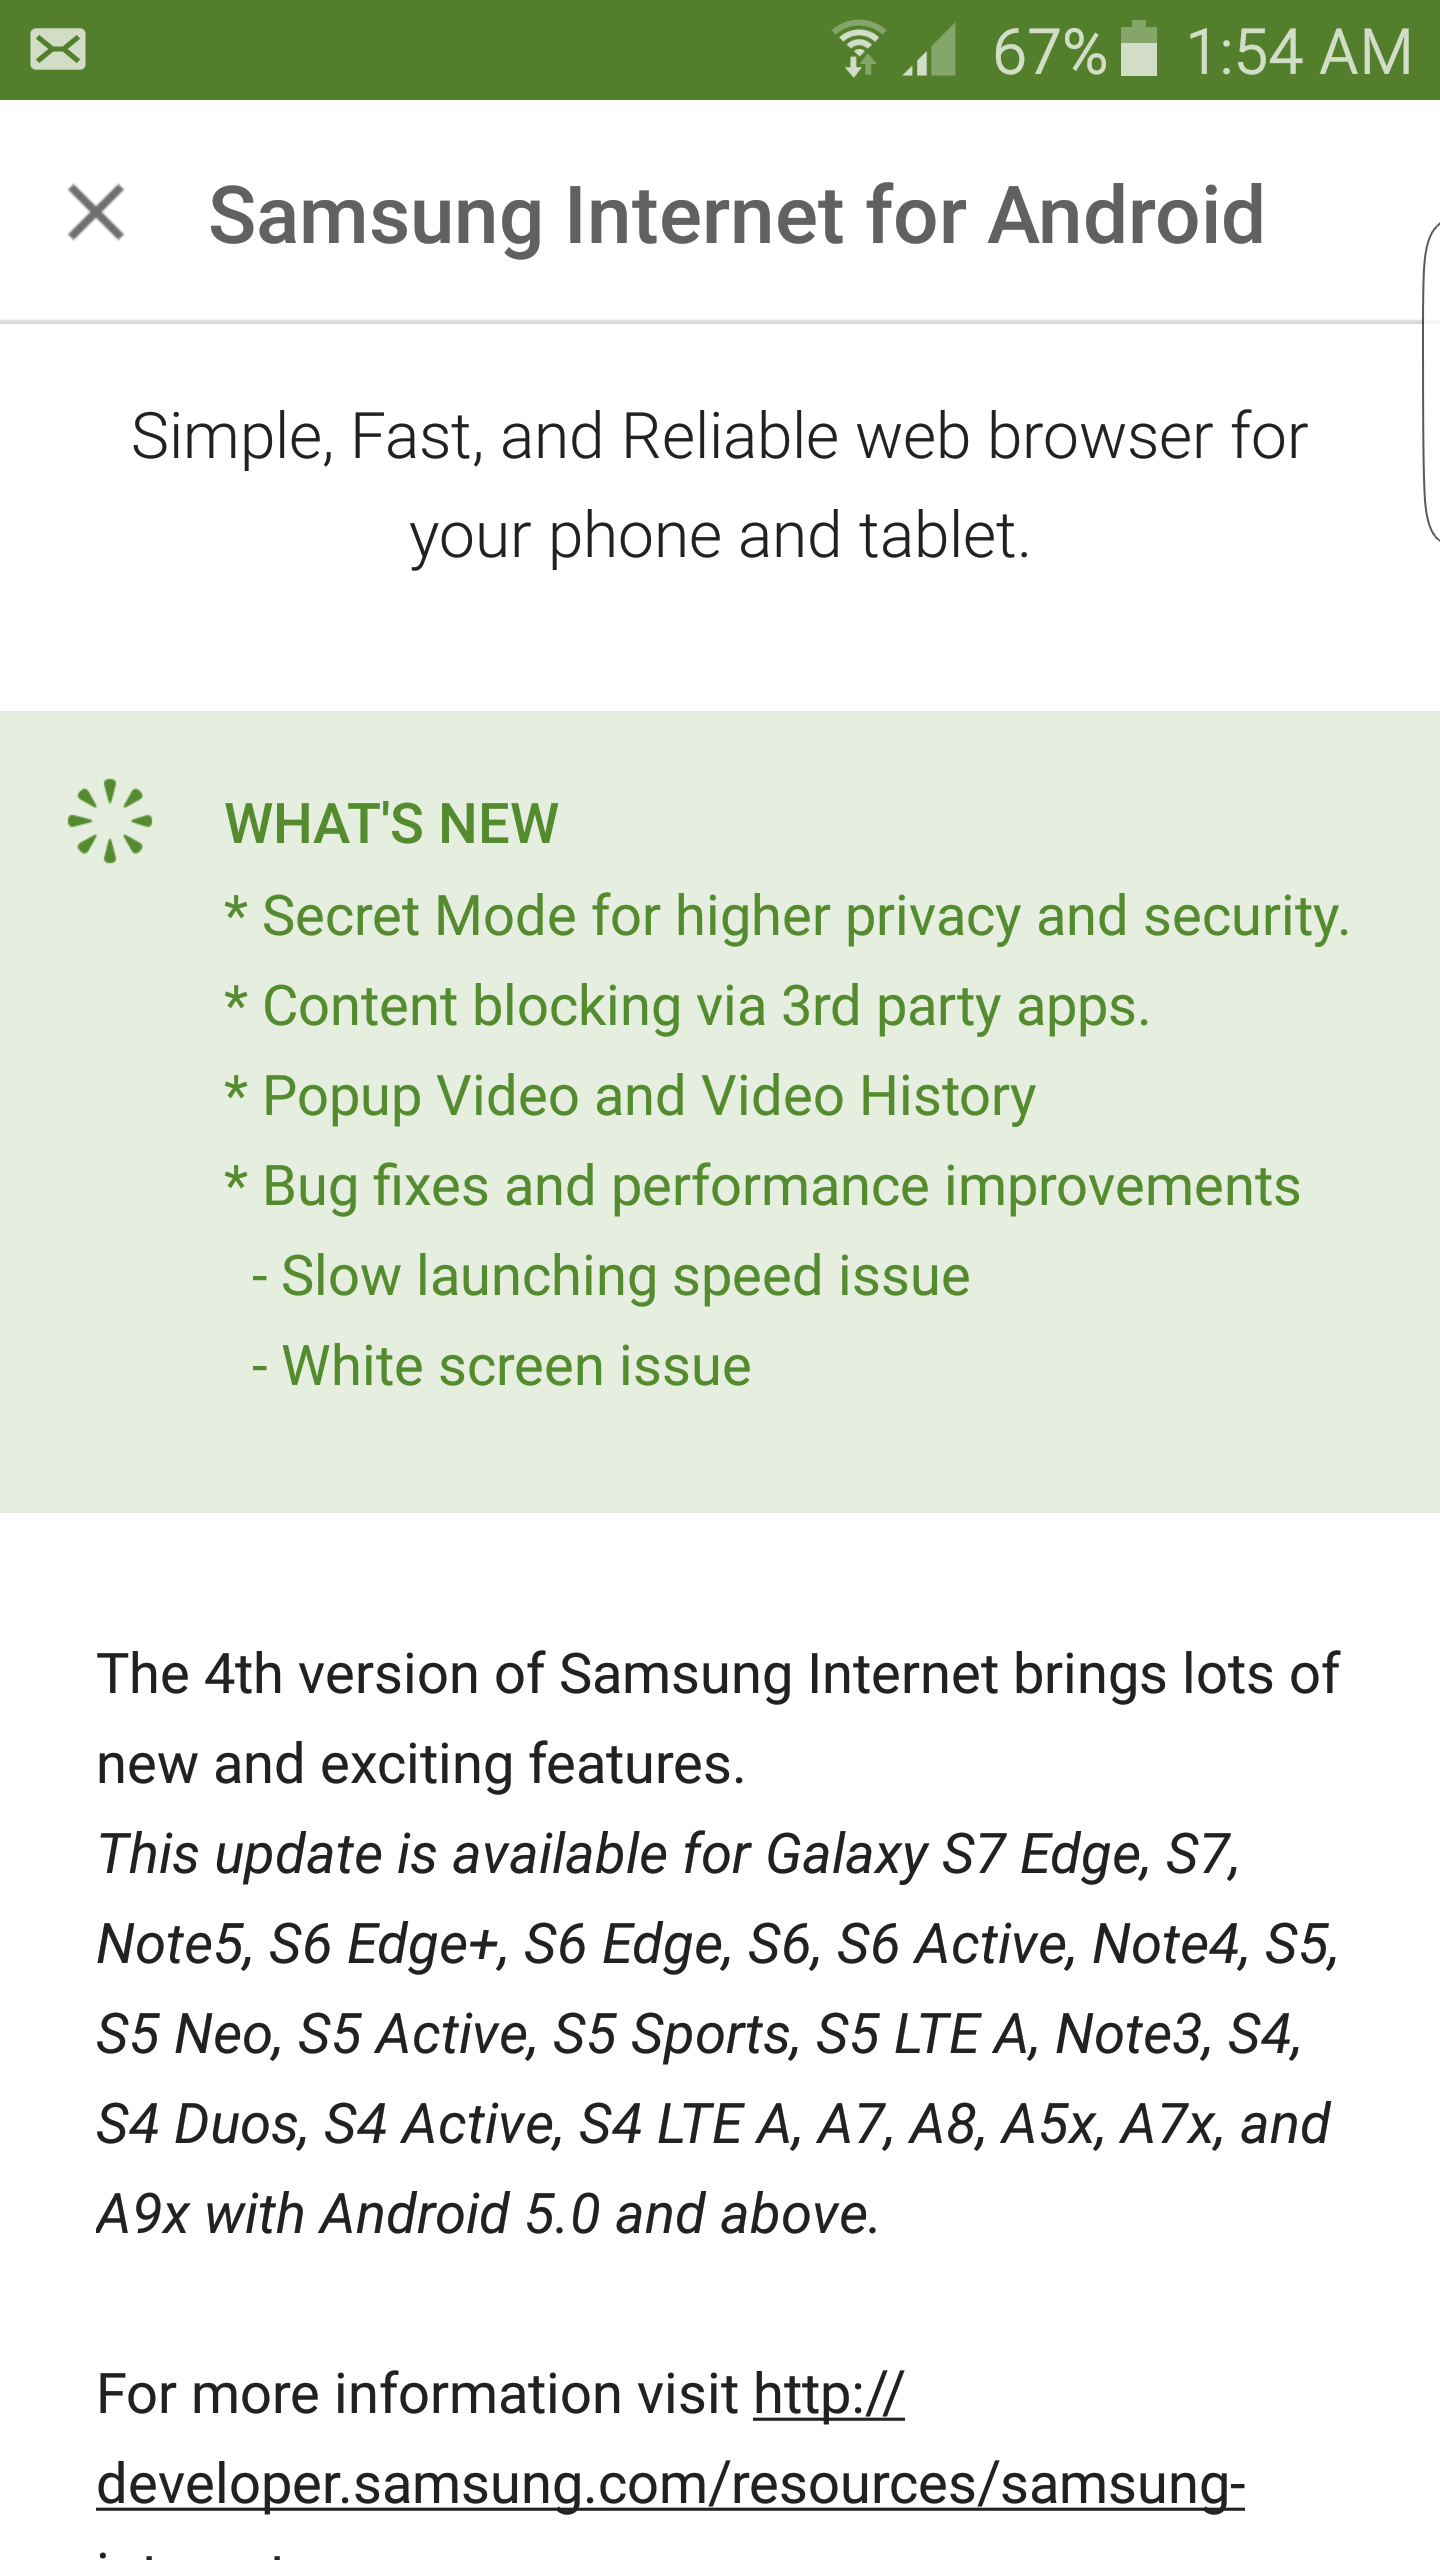 Samsung Internet version 4 0 now released for older Galaxy